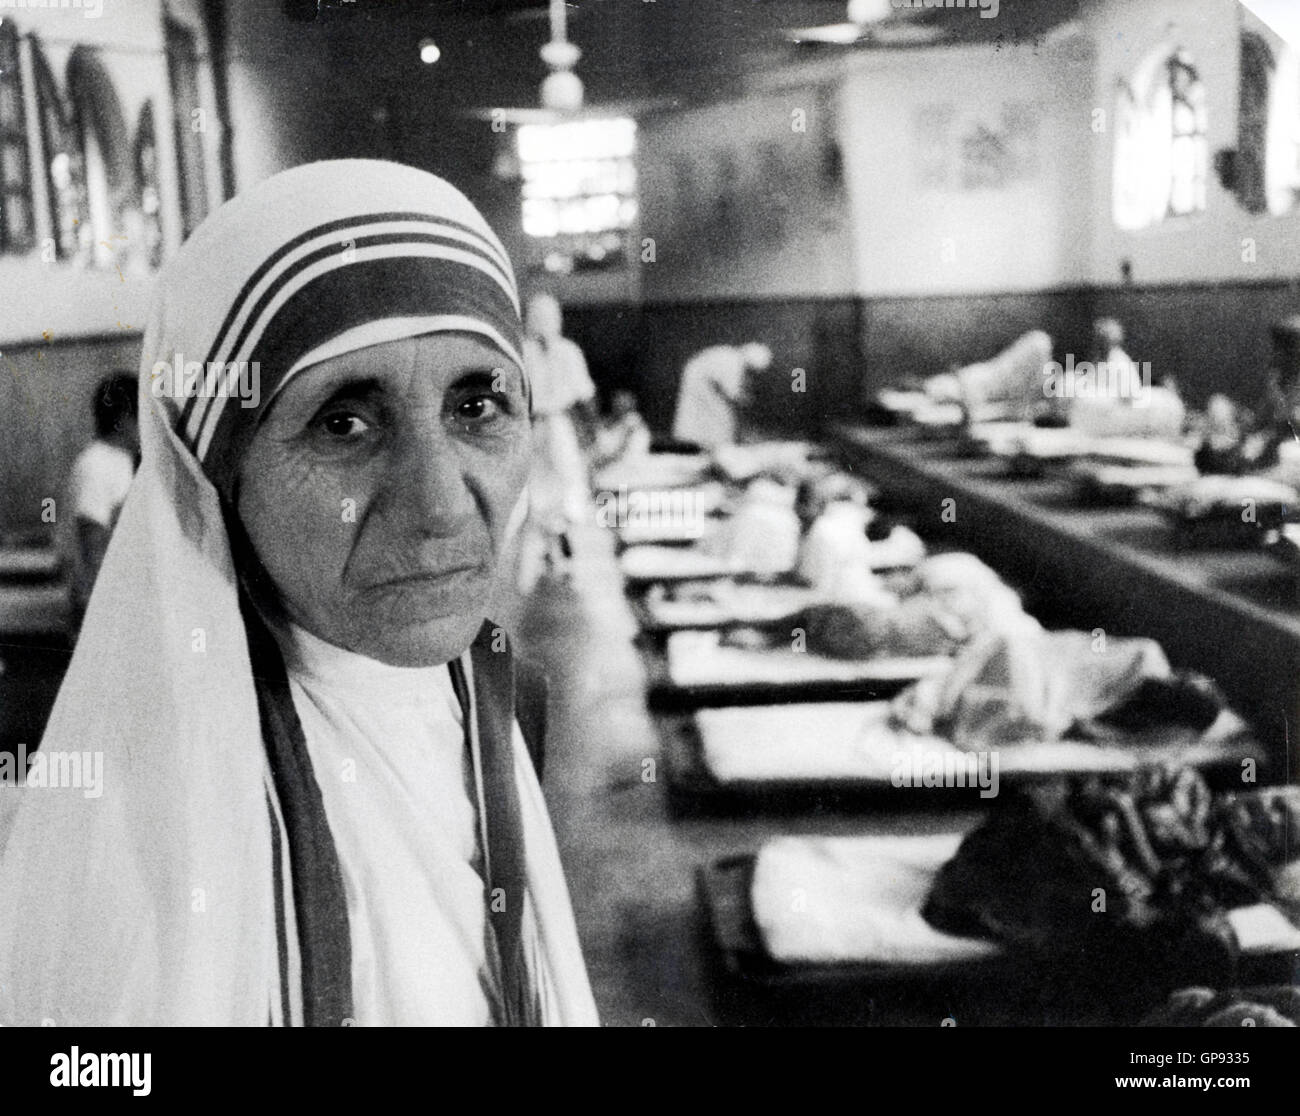 Dec 18, 2015 - File - Mother Teresa to Be Sainted After 2nd Miracle Declares Vatican. MOTHER TERESA, who dedicated - Stock Image